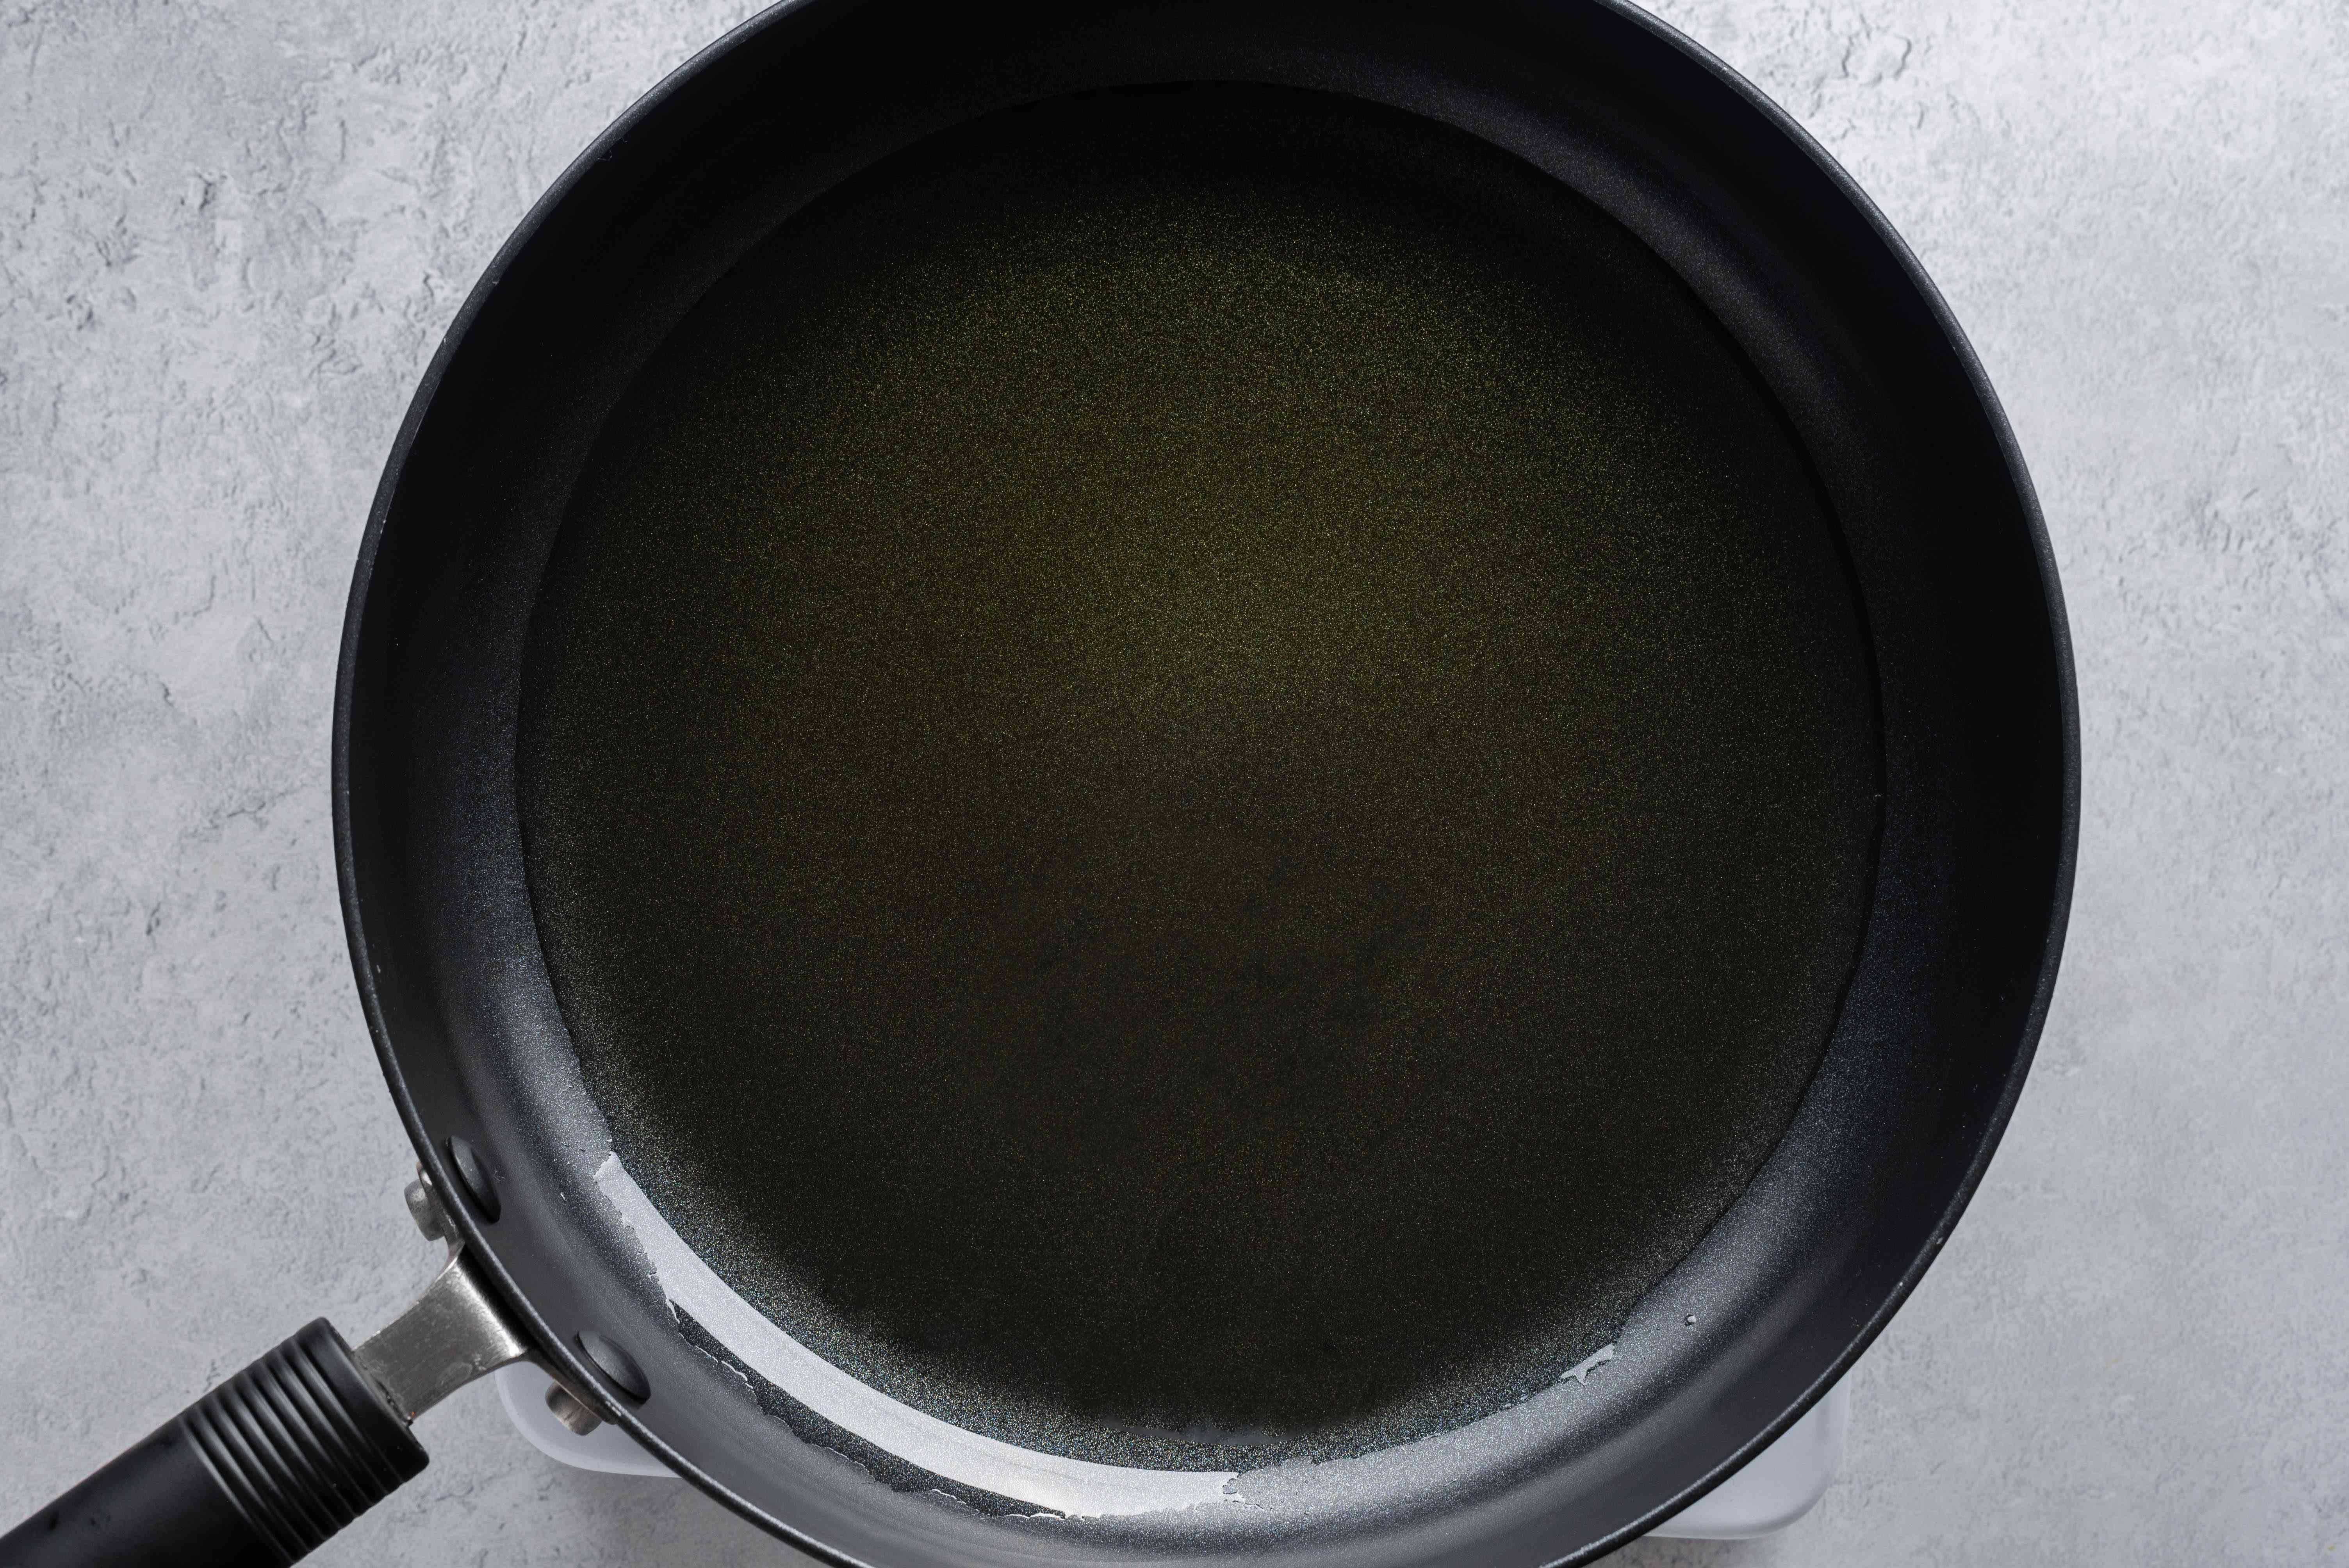 In a large skillet heat 1-inch of olive oil